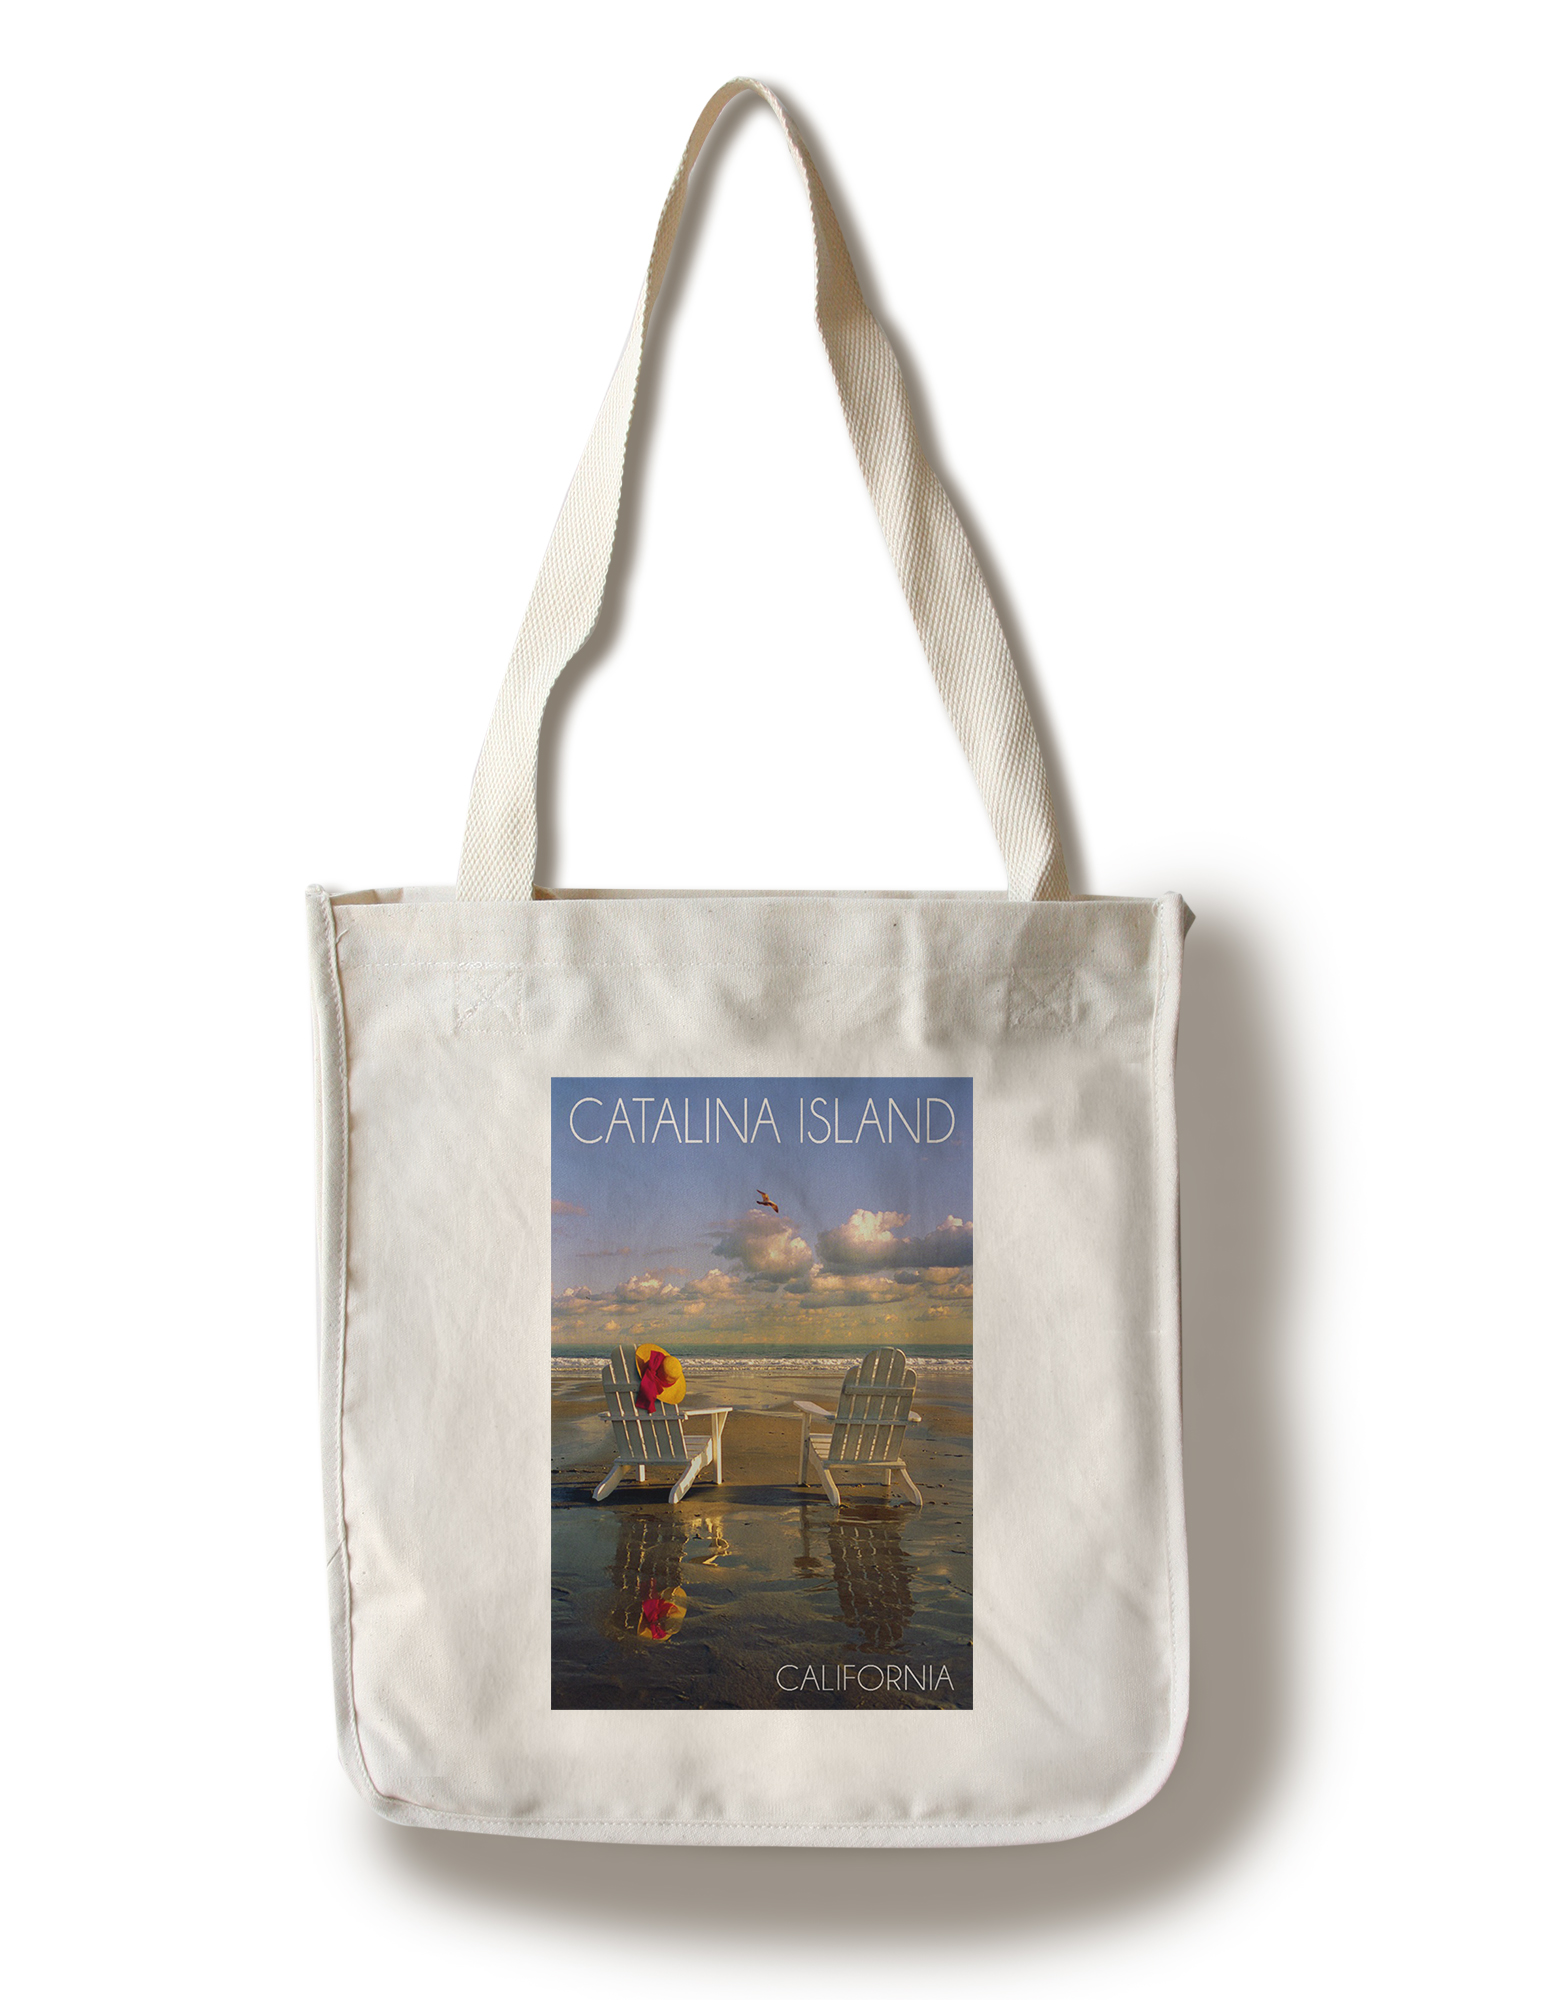 Catalina Island, California Adirondack Chairs on the Beach Lantern Press Photography (100% Cotton Tote Bag Reusable) by Lantern Press